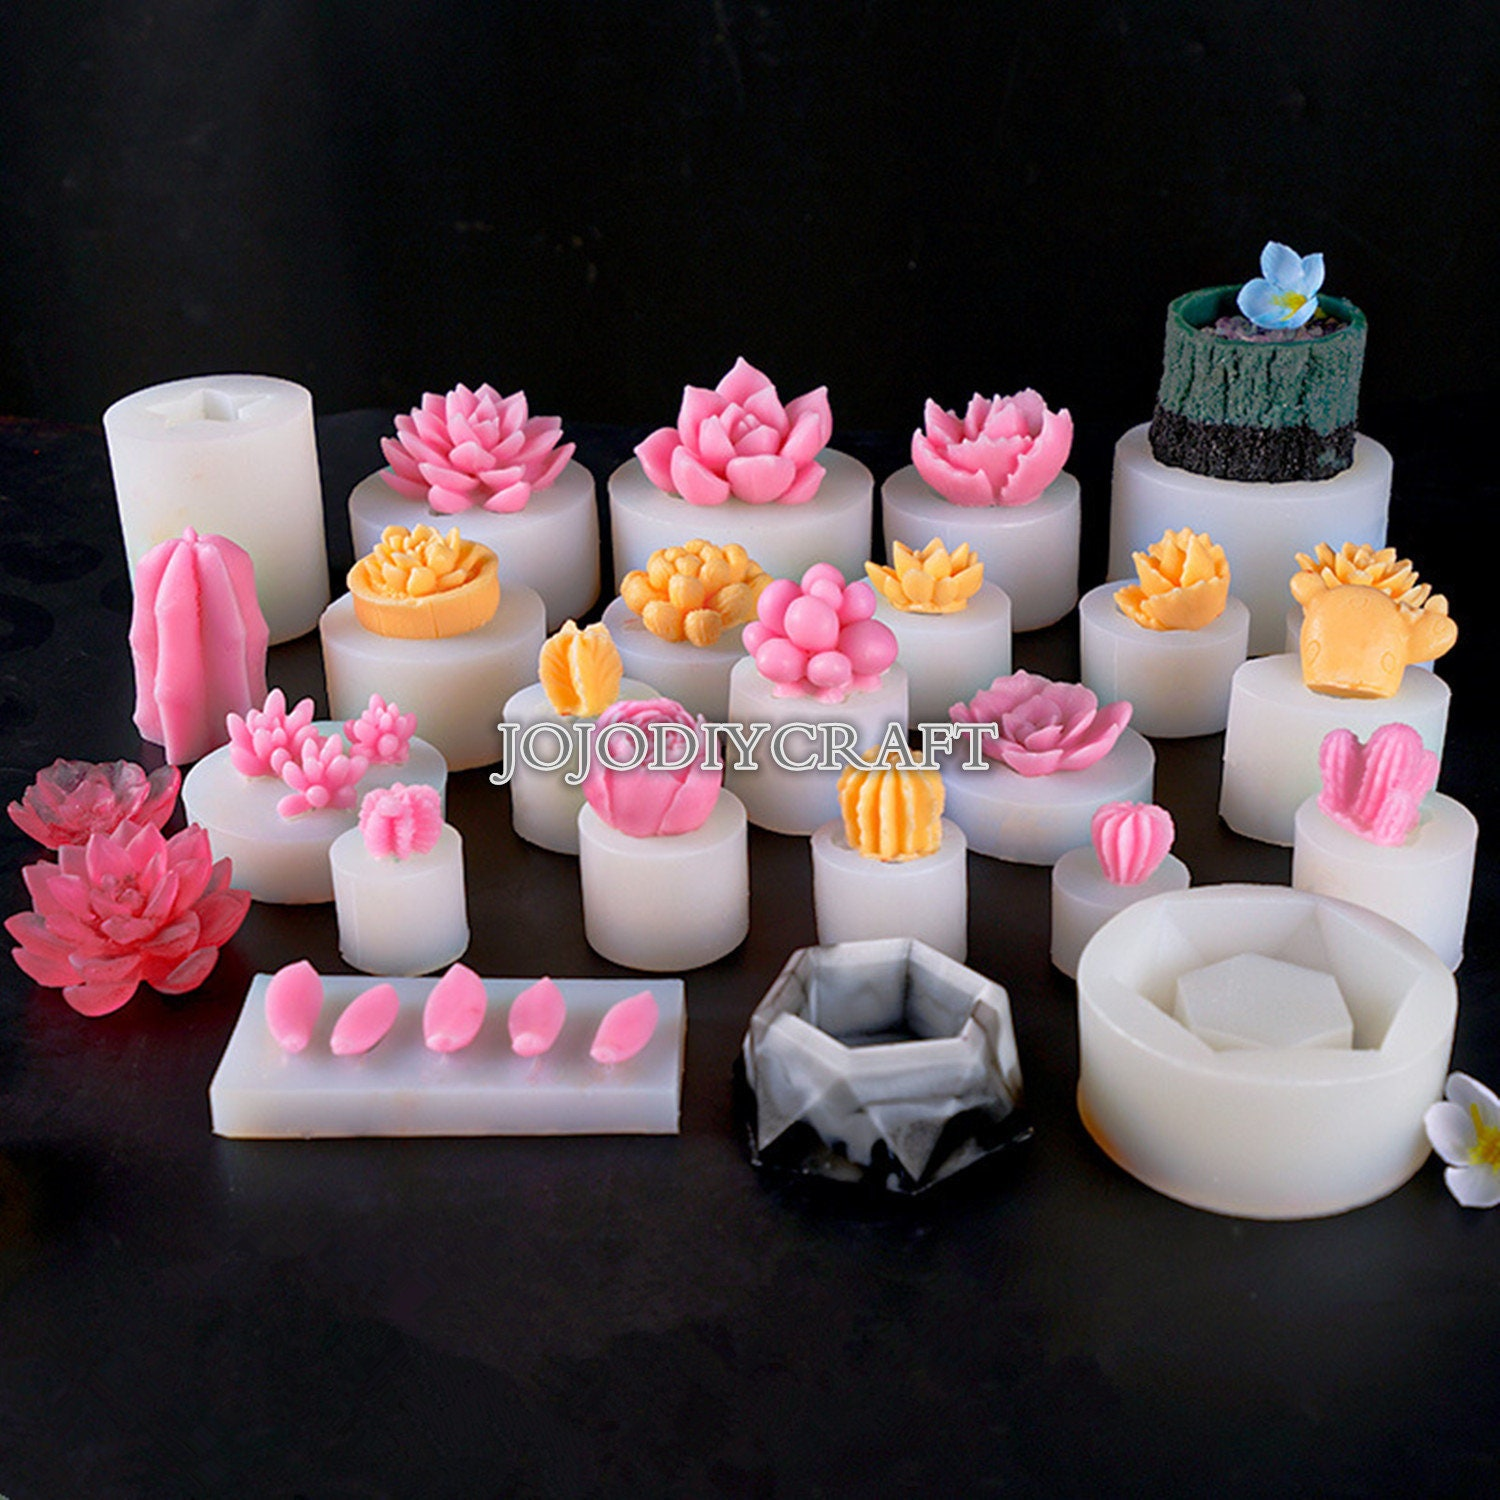 Succulents Molds Cactus Candle Shaped Soap Cake Sugar Silicone Mould 3D DIY